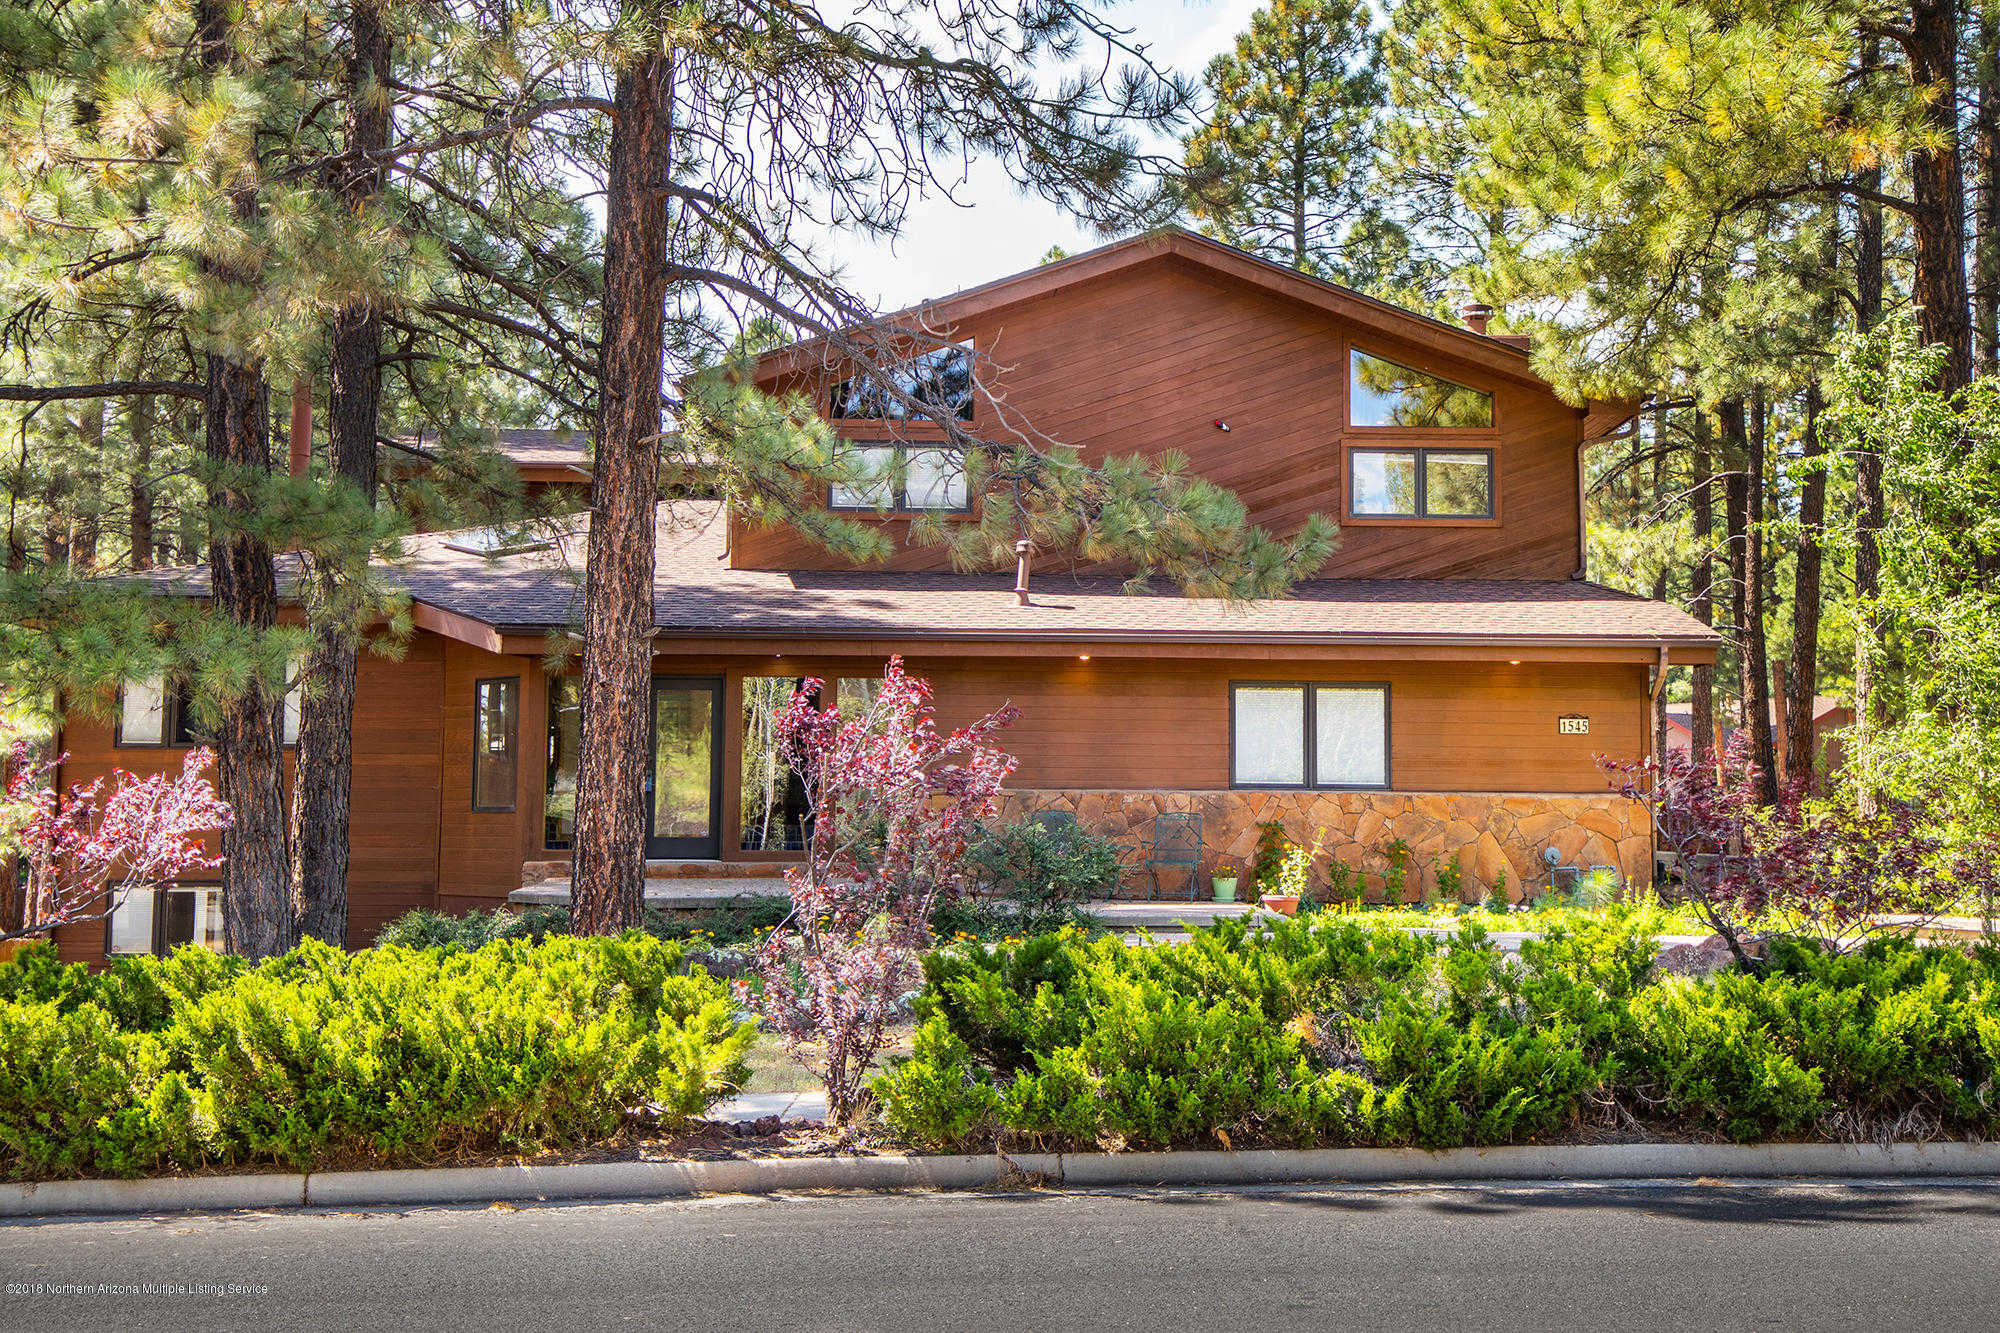 cabins in cabin management vacation sedona homes foothills flagstaff rentals property